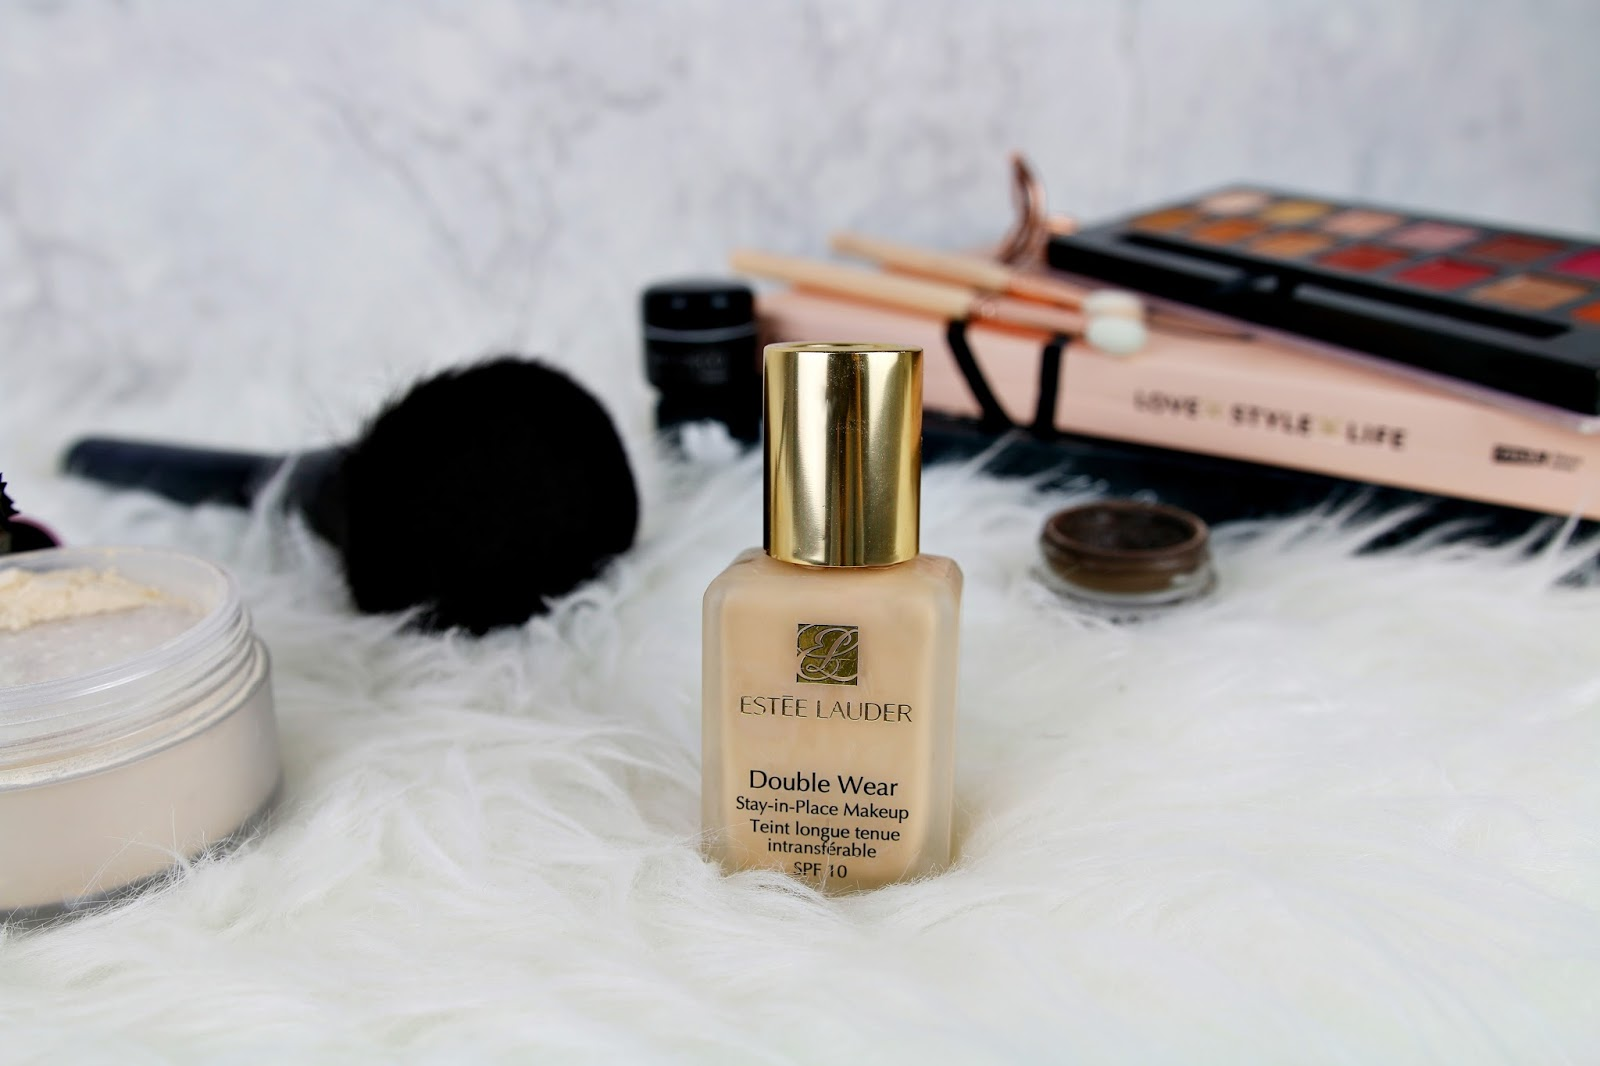 Estee Lauder Double Wear Stay-In-Place opinie